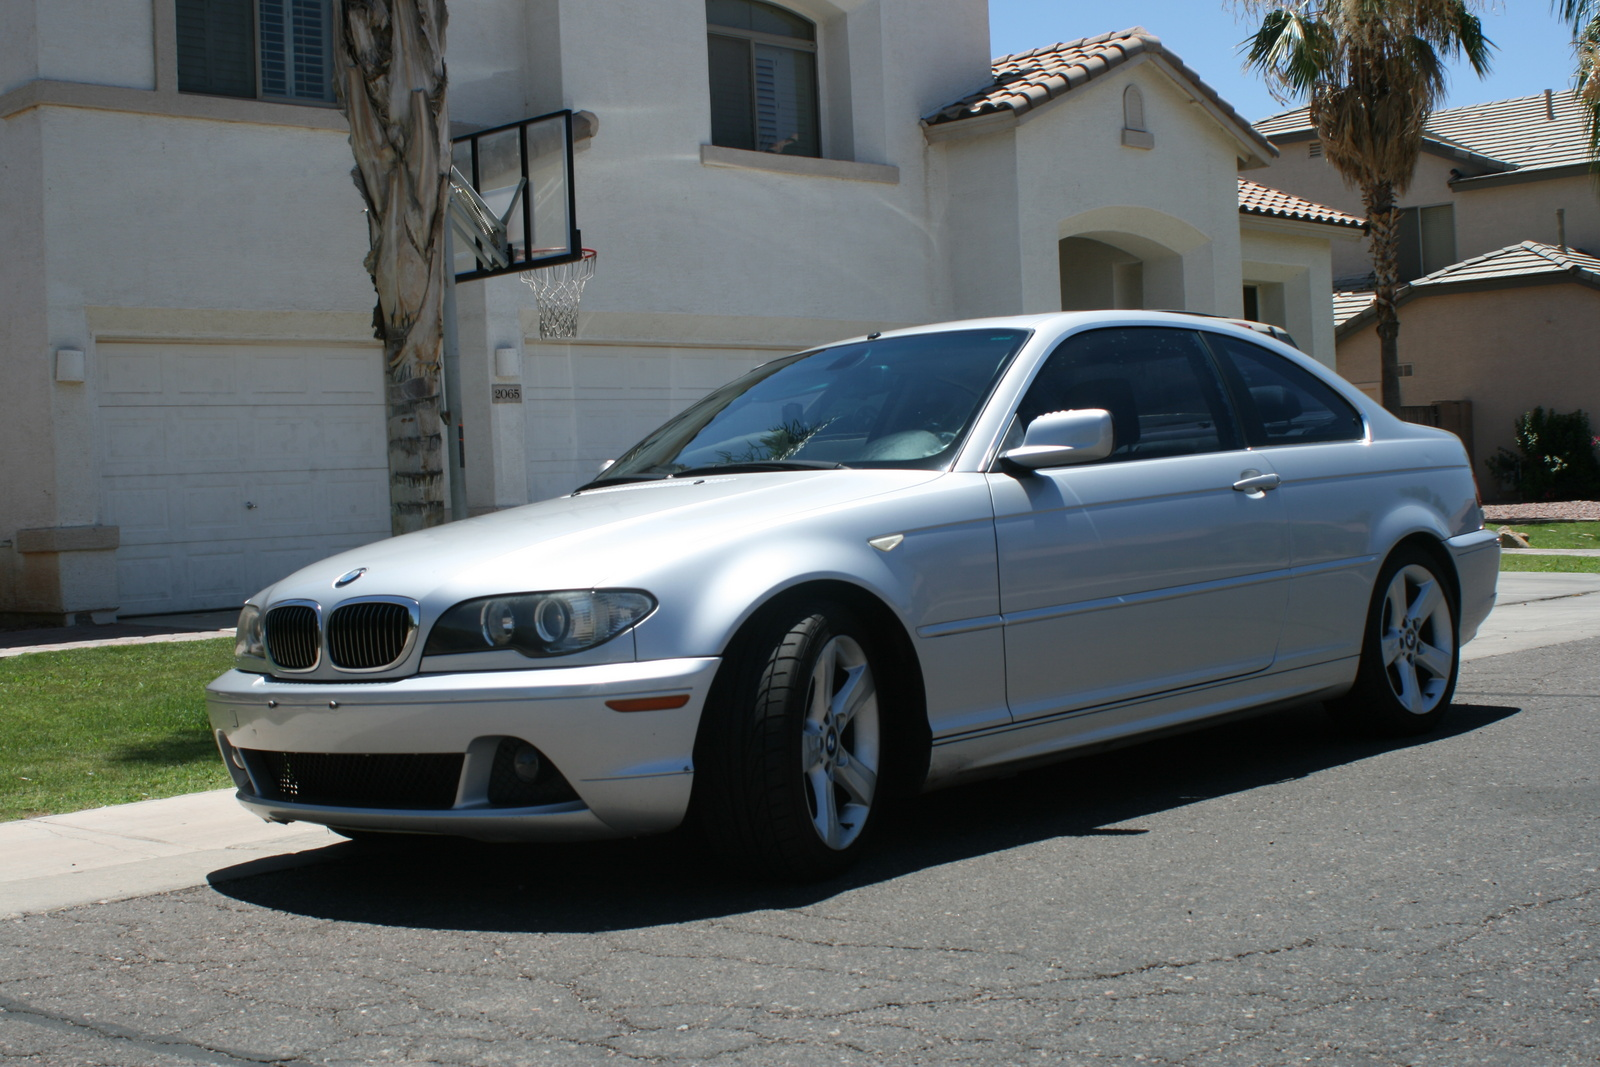 BMW 3 series 335xi 2004 photo - 9